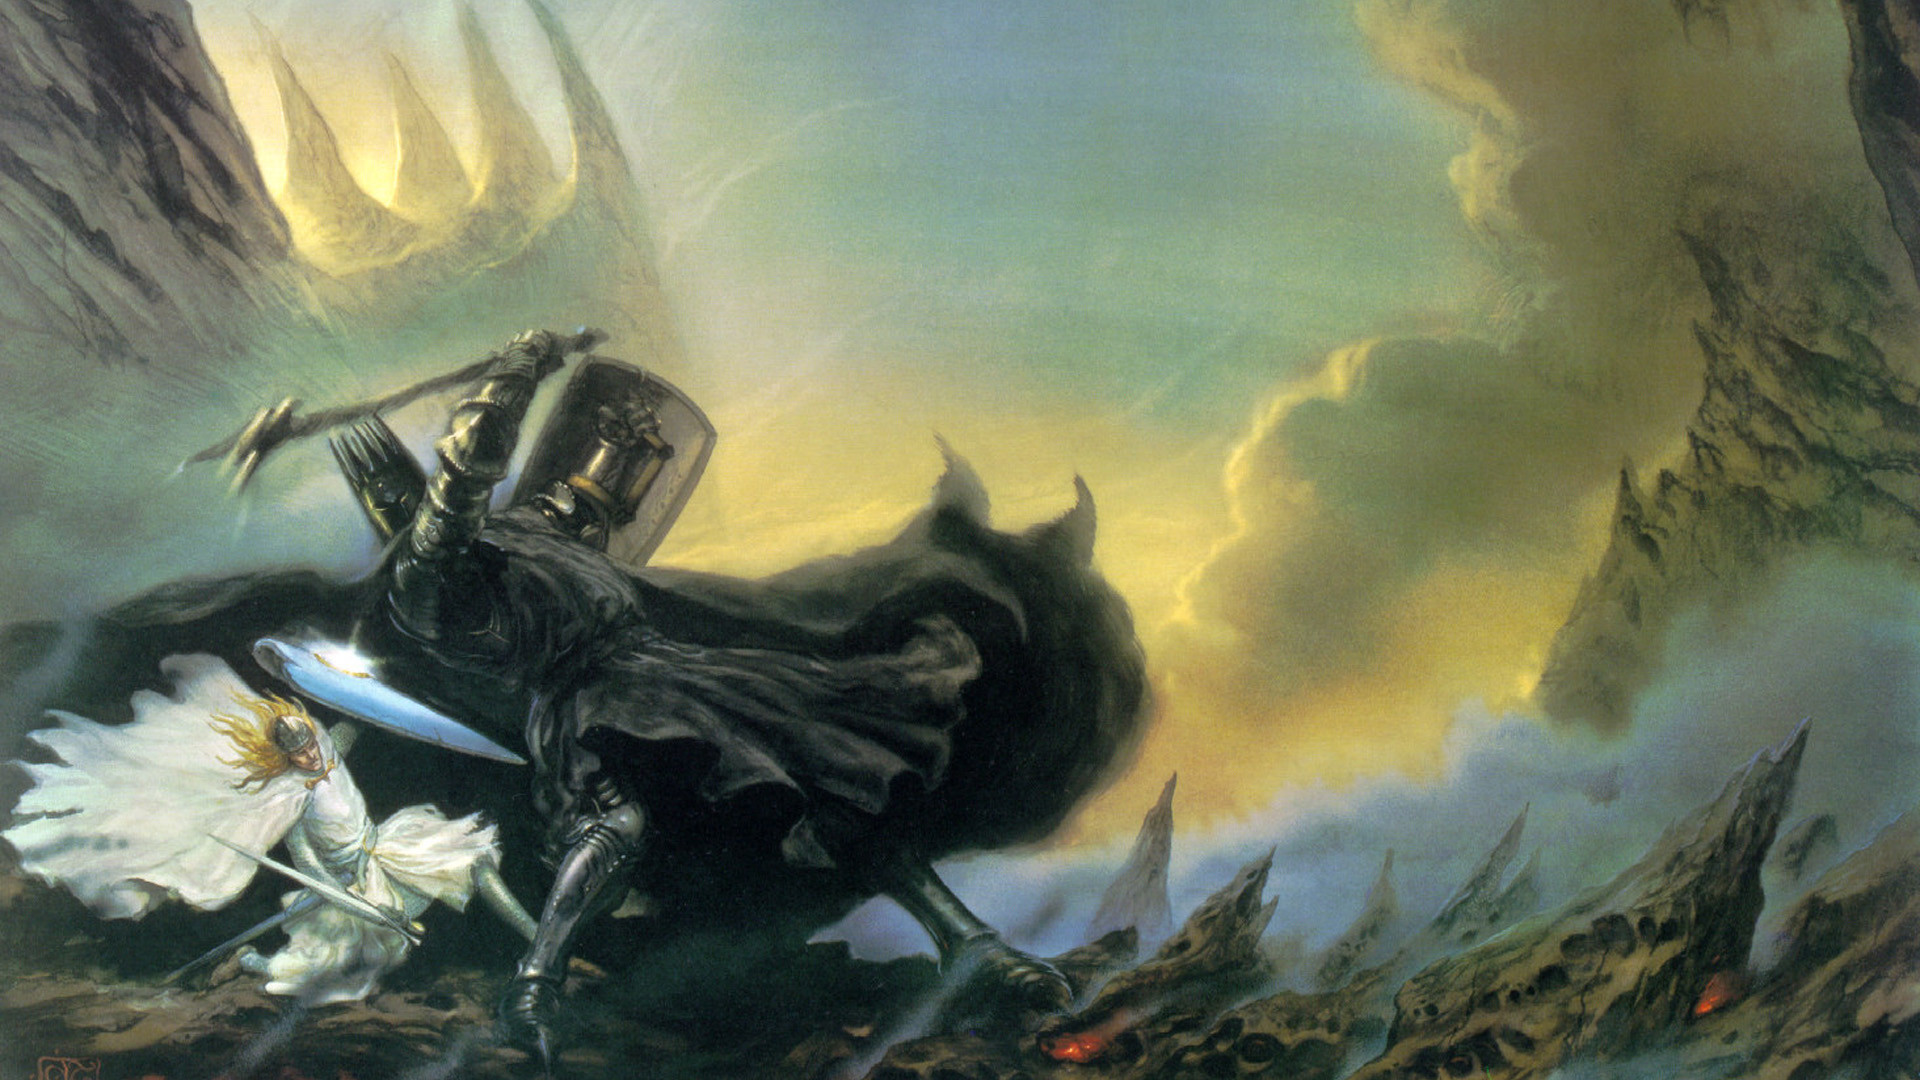 1920x1080 J. R. R. Tolkien, The Silmarillion, Morgoth, Fantasy Art, John Howe  Wallpapers HD / Desktop and Mobile Backgrounds